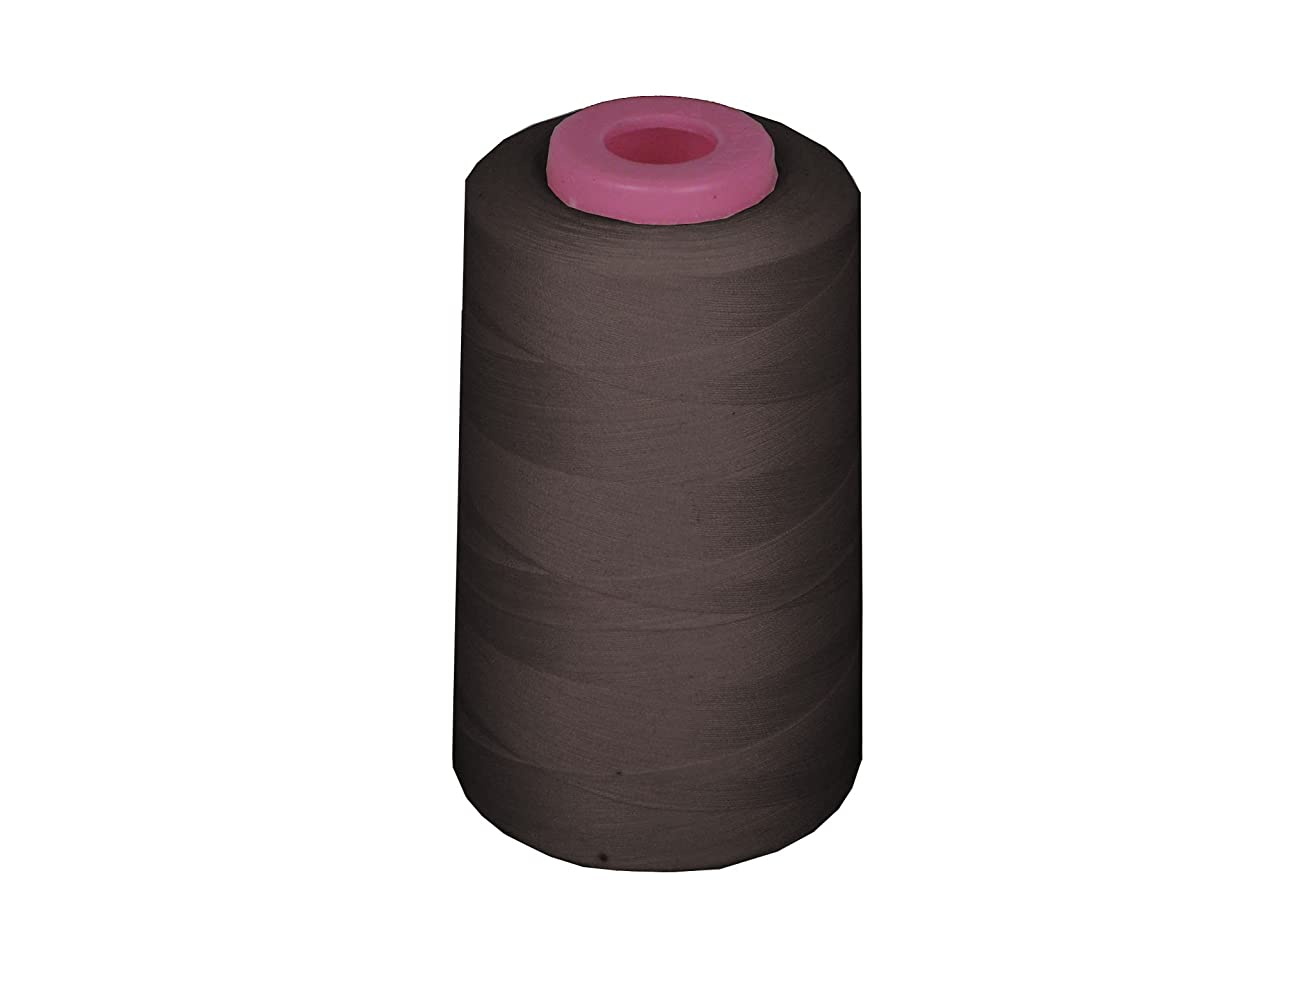 LA Linen BCACS13429 ThreadCharcoalA781 100% Polyester Cone Serger Thread, Charcoal A781